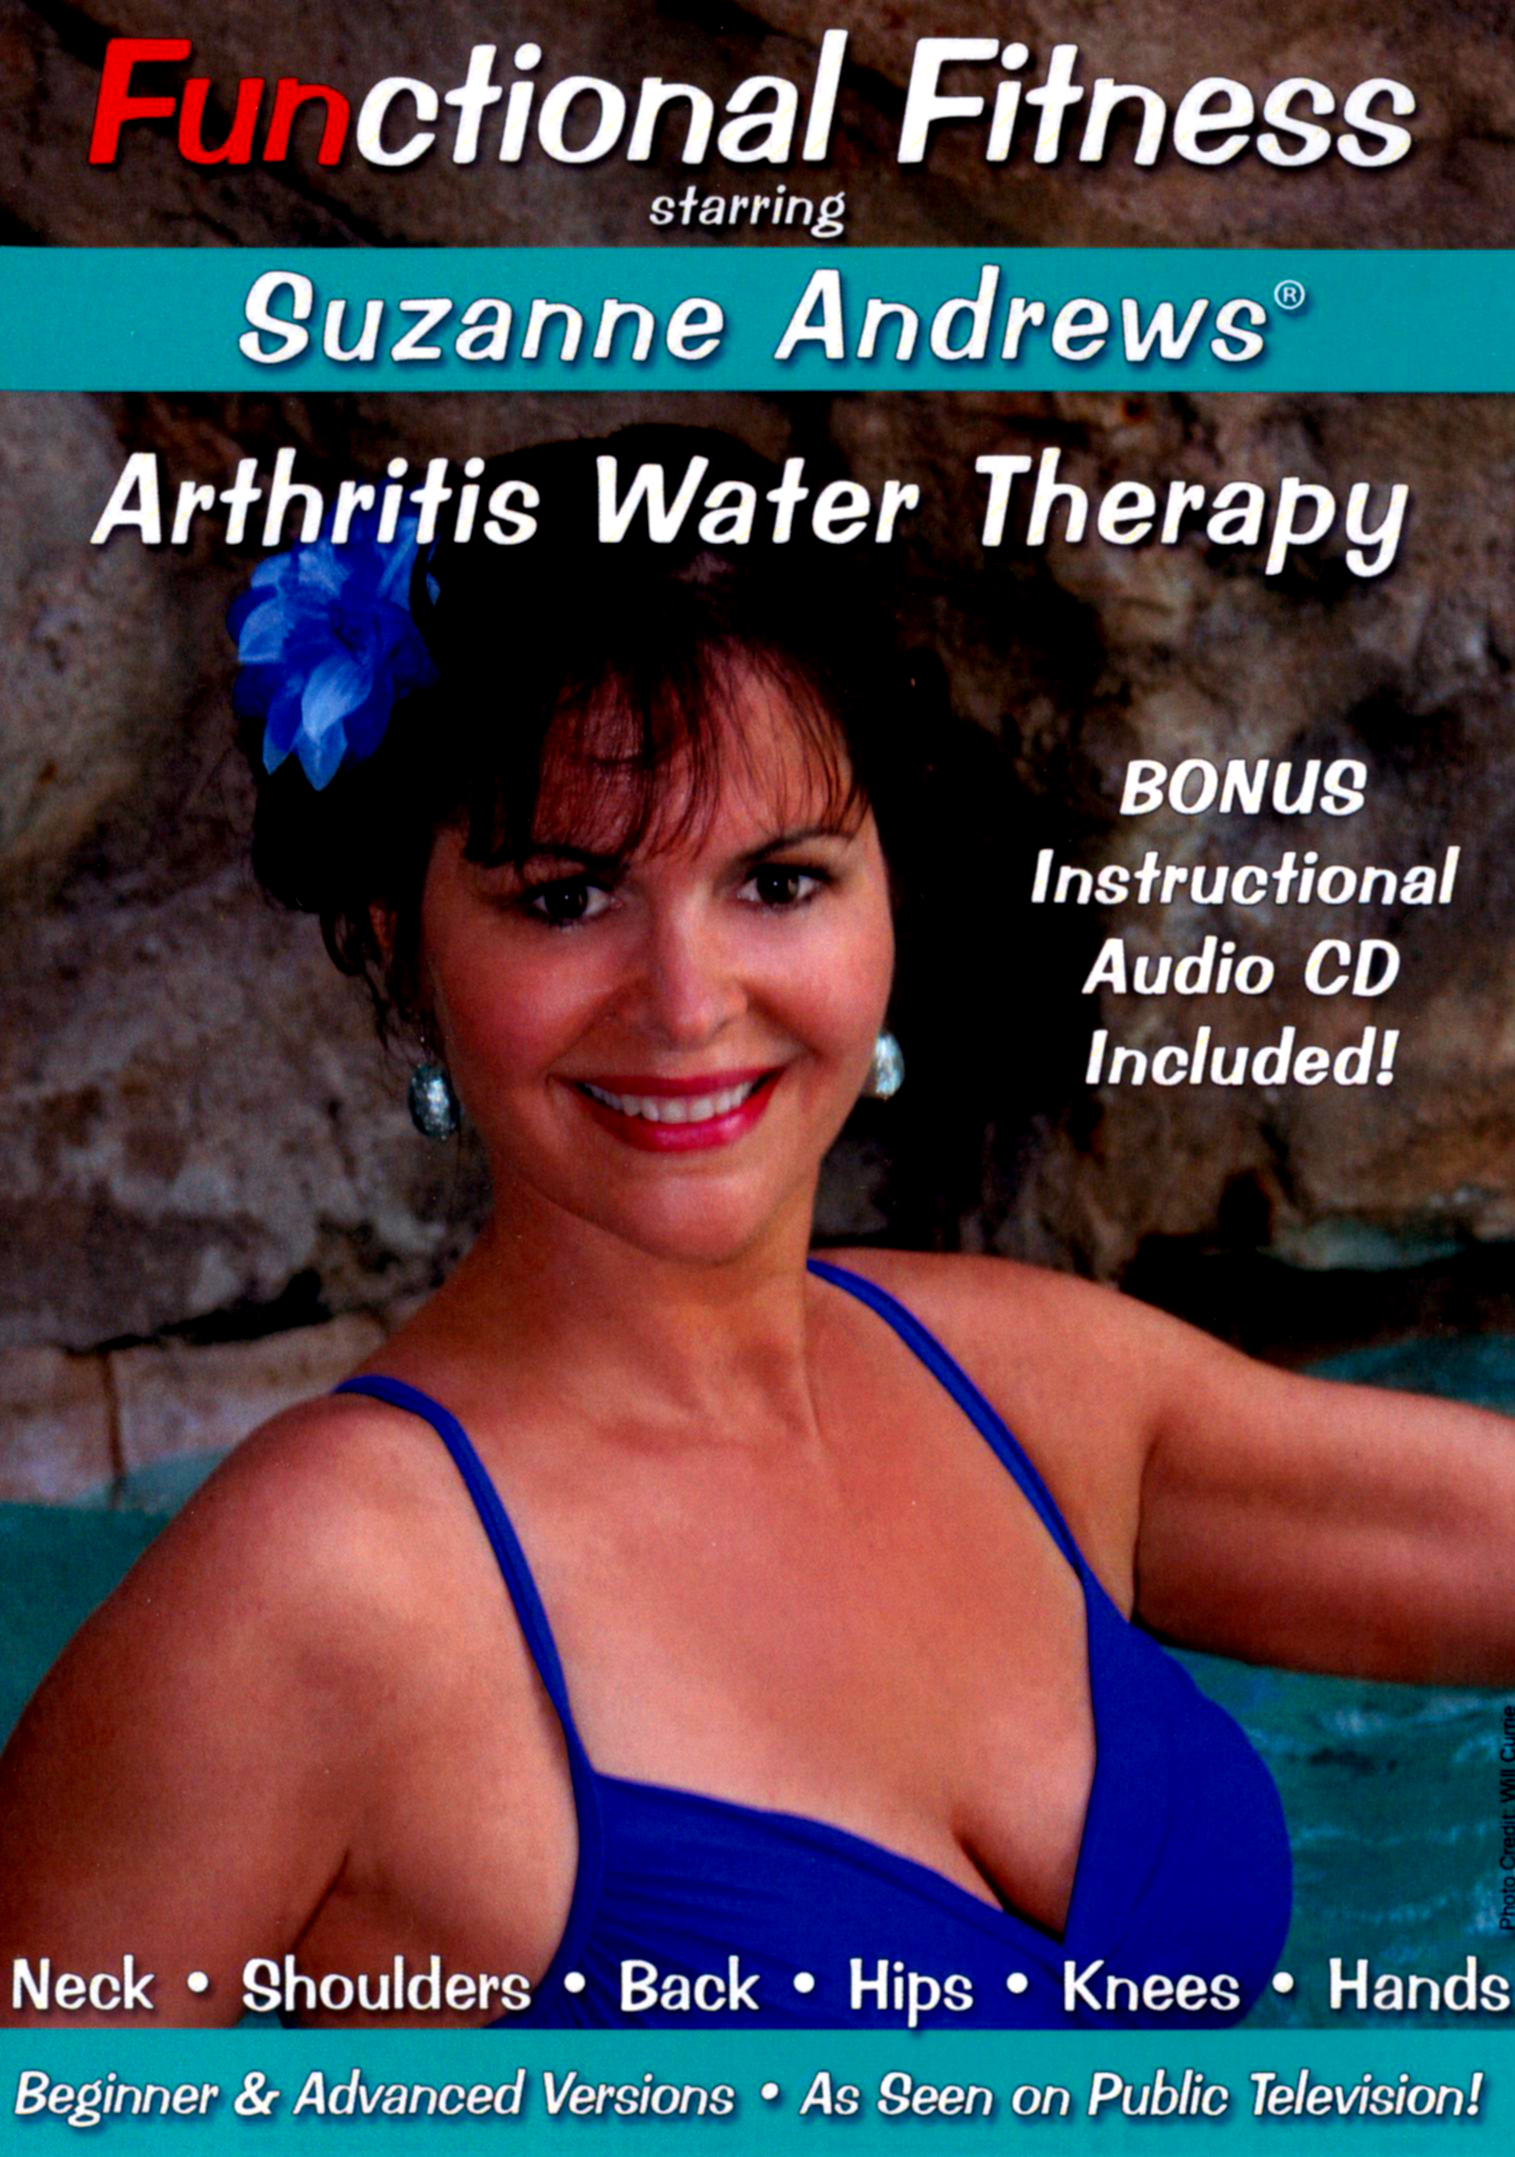 Suzanne Andrews: Functional Fitness - Arthritis Water Therapy